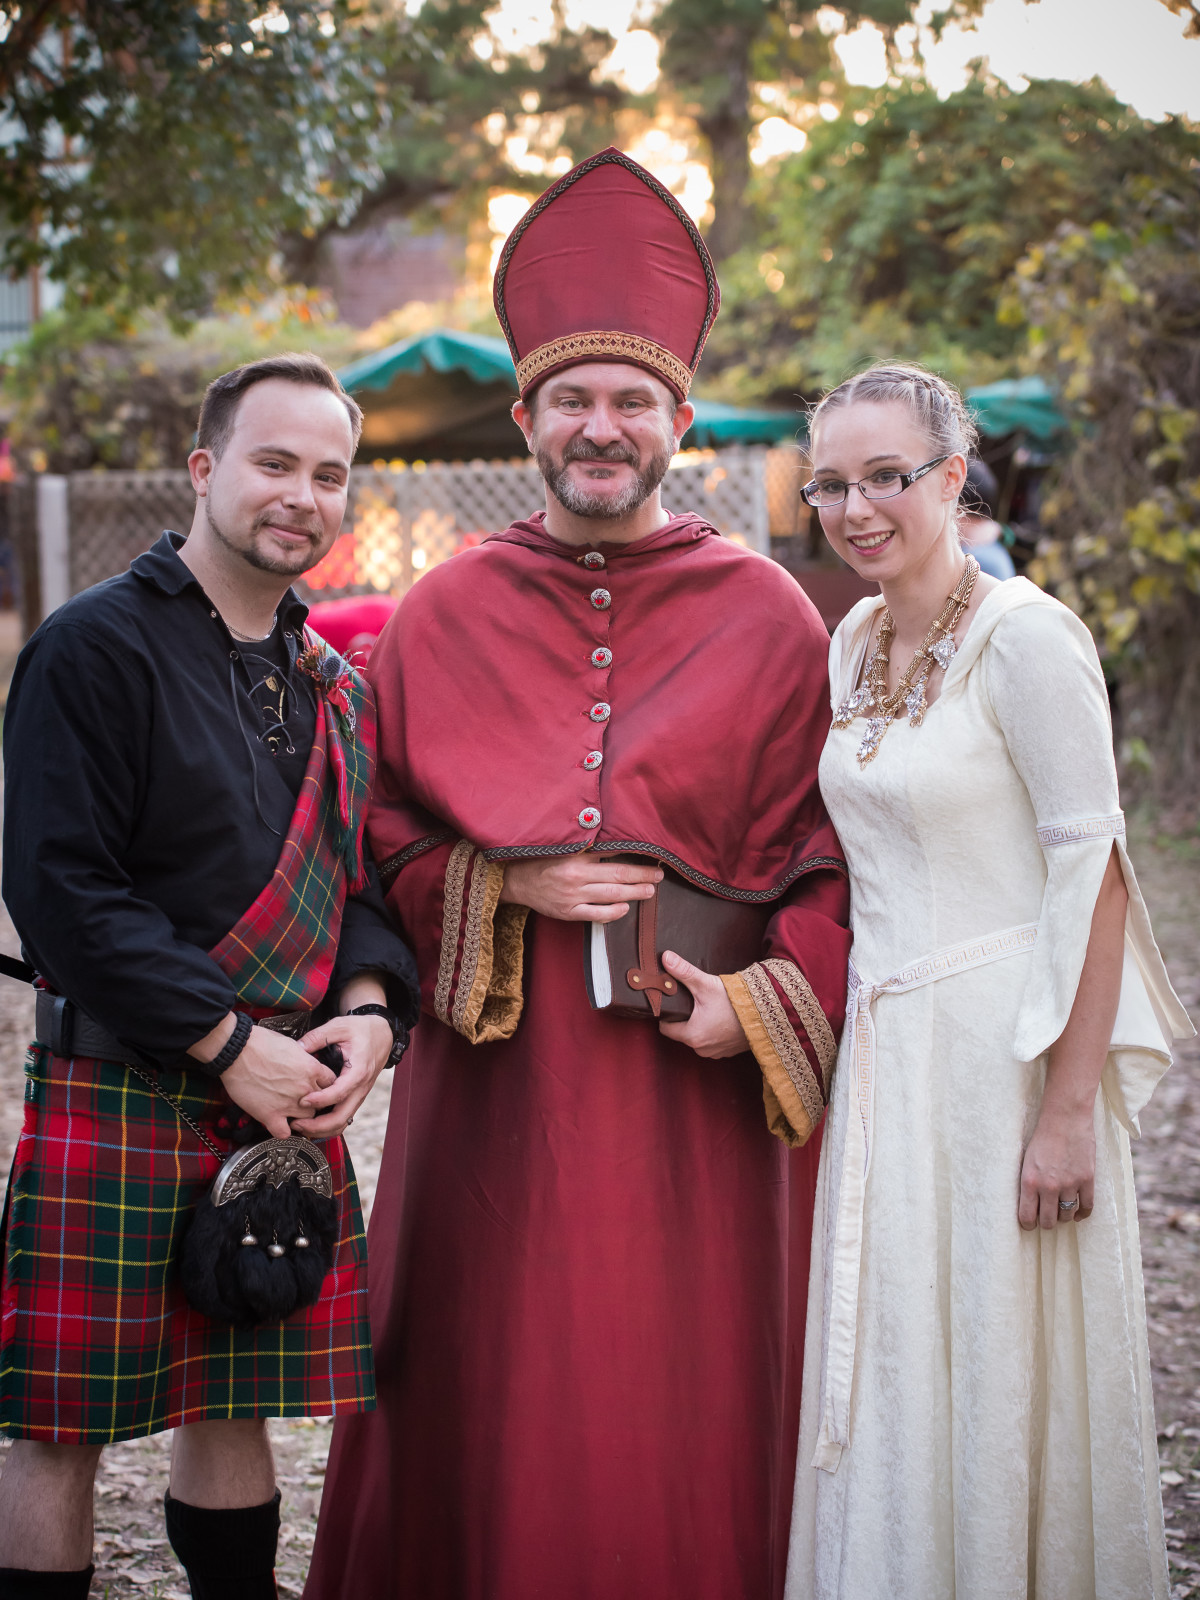 Renaissance Festival Weddings, Feb. 2016 Shane Burnett, Kristin Wilhite